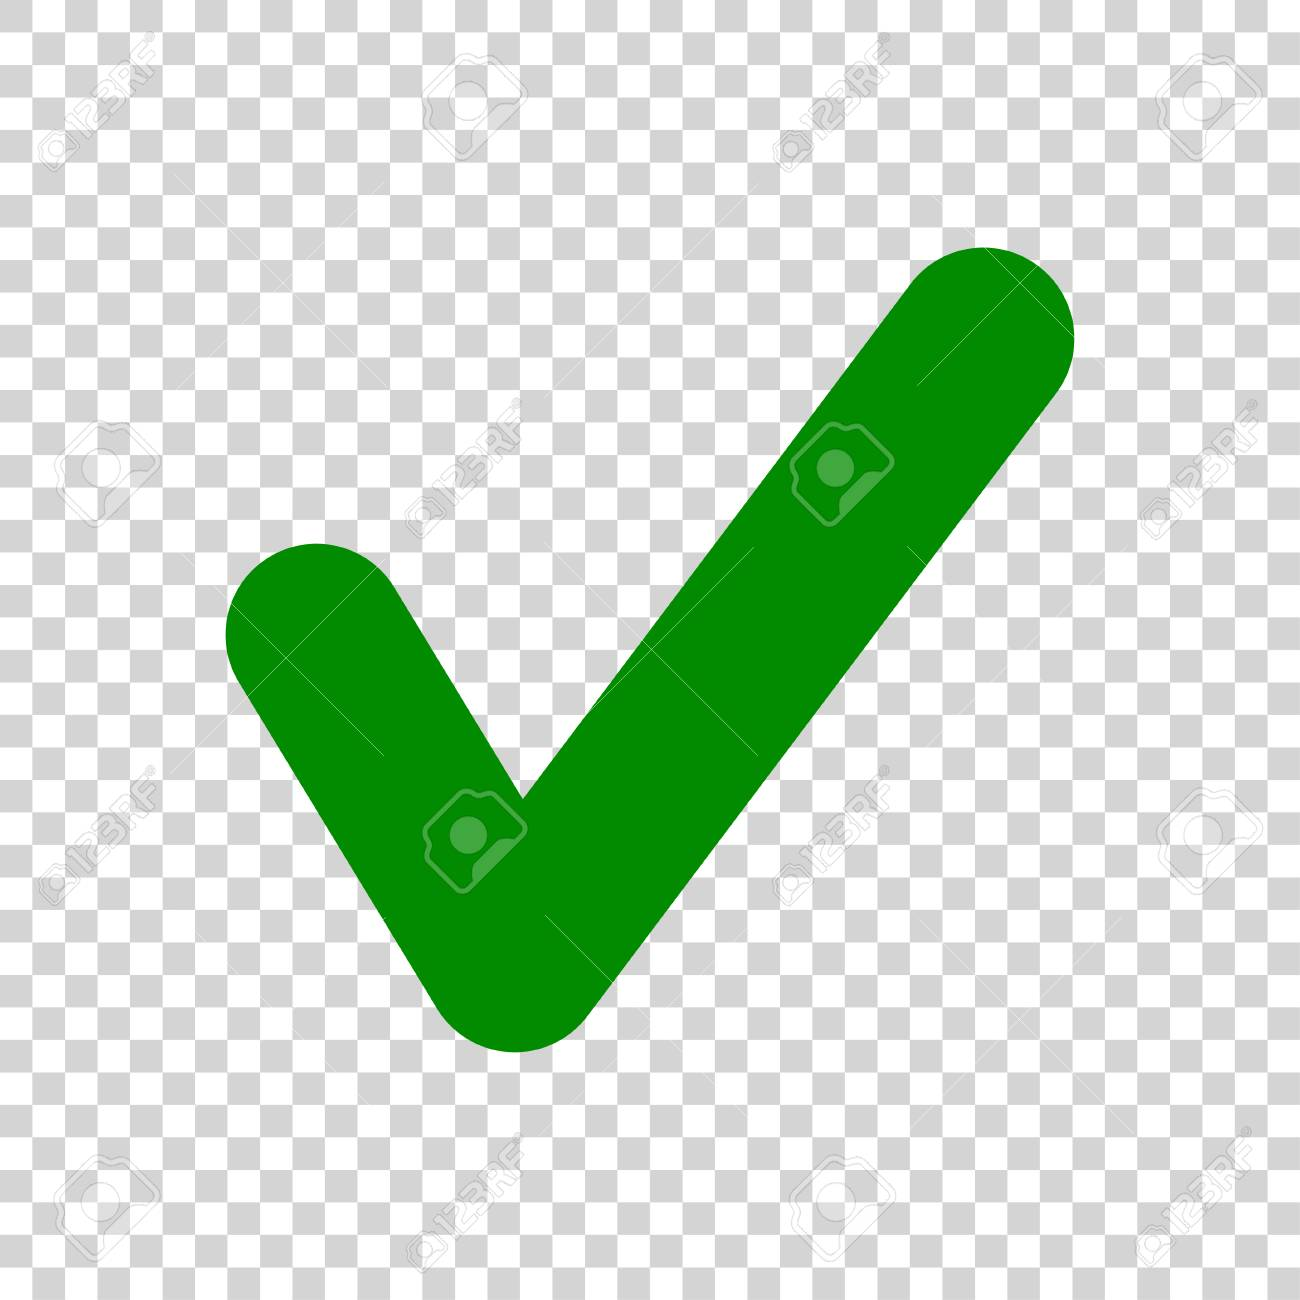 Green Check Mark icon isolated on transparent background - 110082102